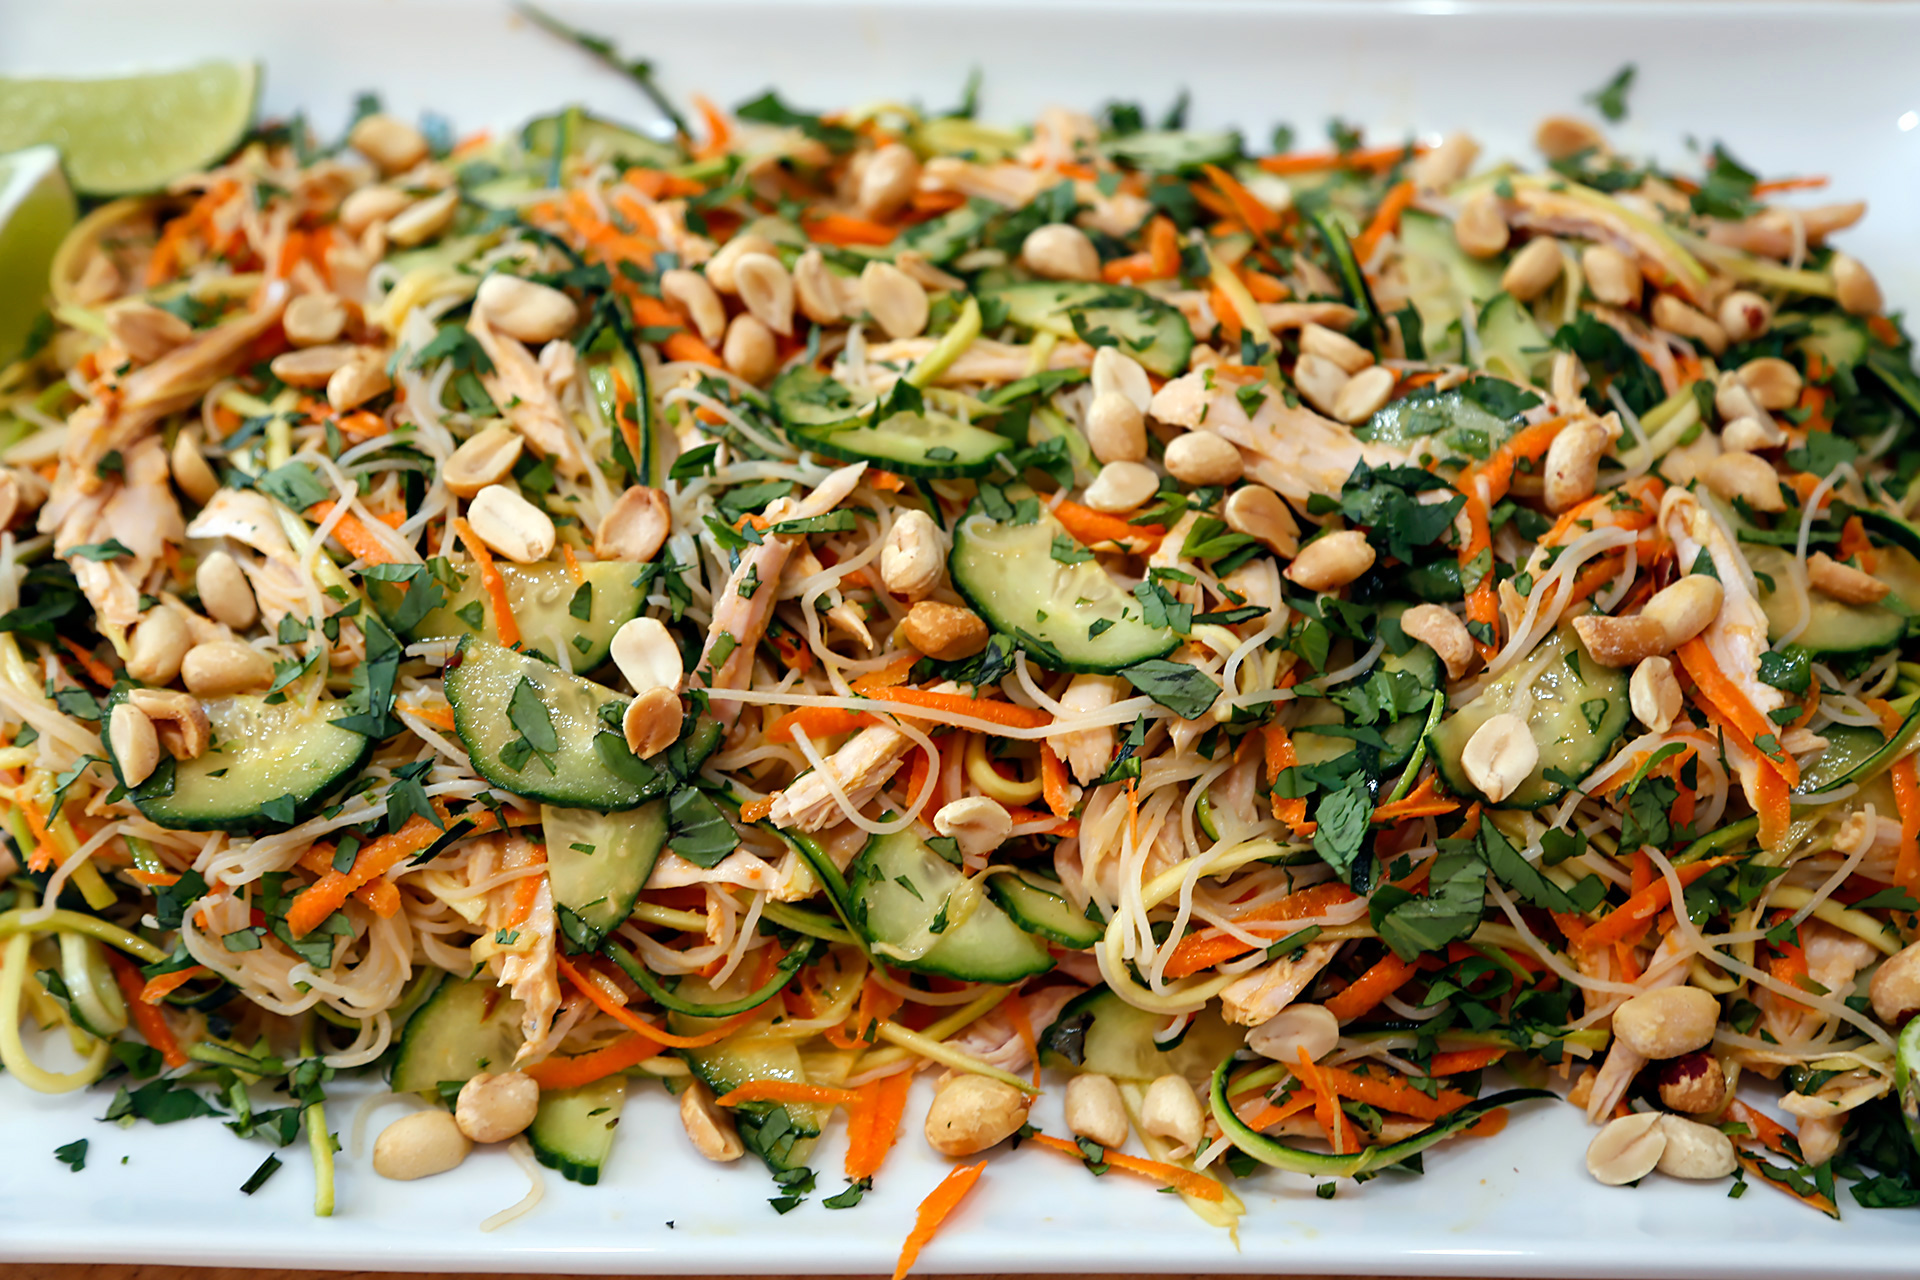 Asian-Style Noodle Salad with Turkey, Veggies, Herbs, and Lime-Peanut Vinaigrette.